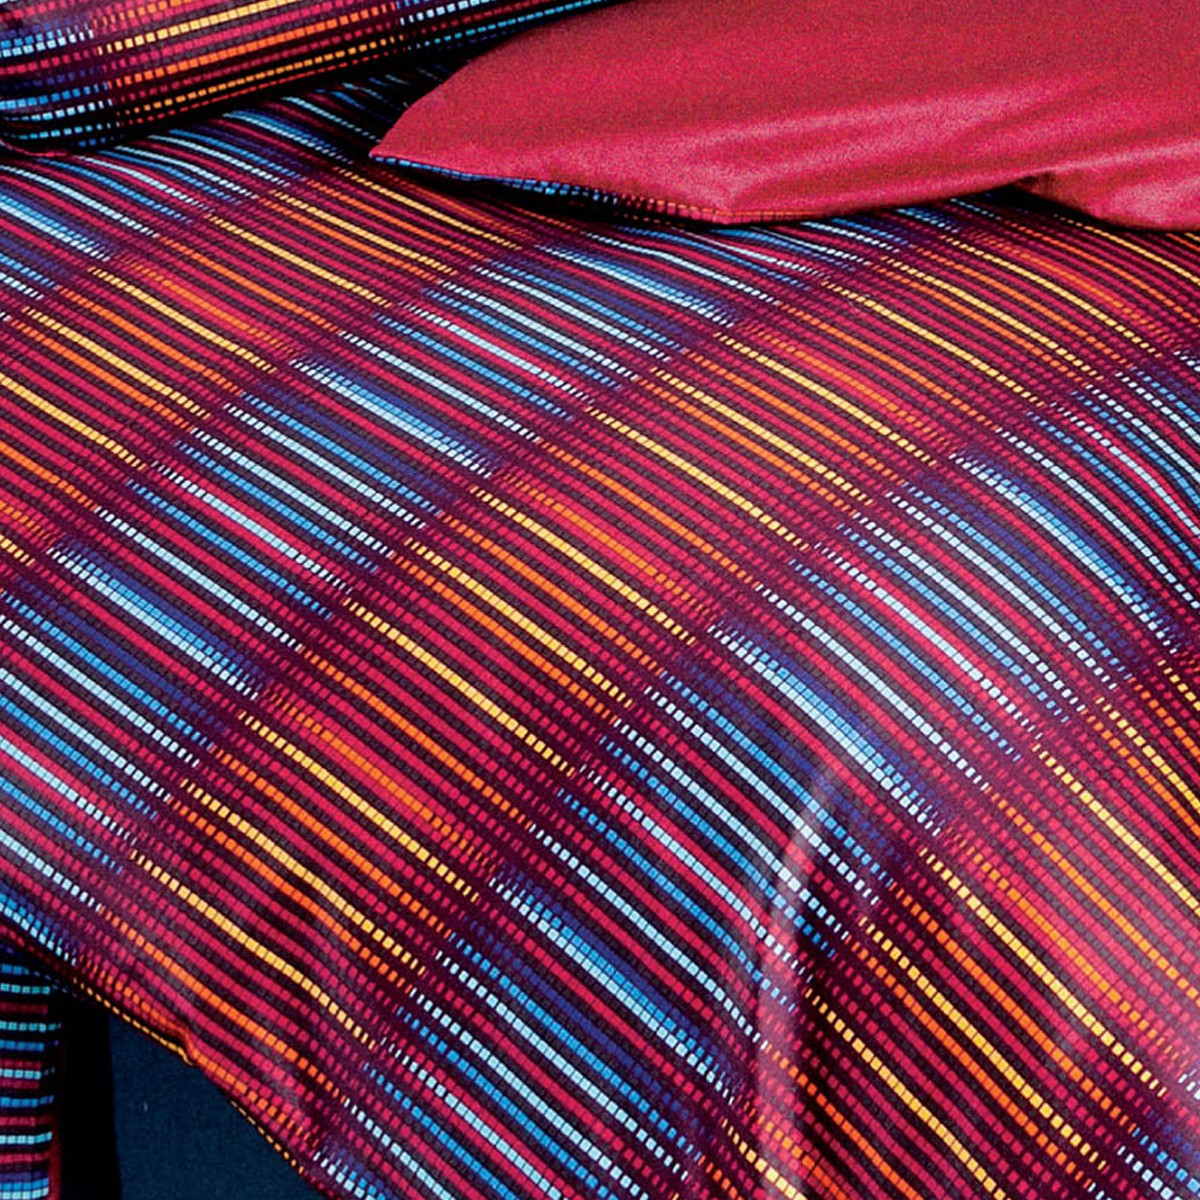 janine interlock feinjersey bettw sche carmen 5457 01 rot orange blau 3967. Black Bedroom Furniture Sets. Home Design Ideas